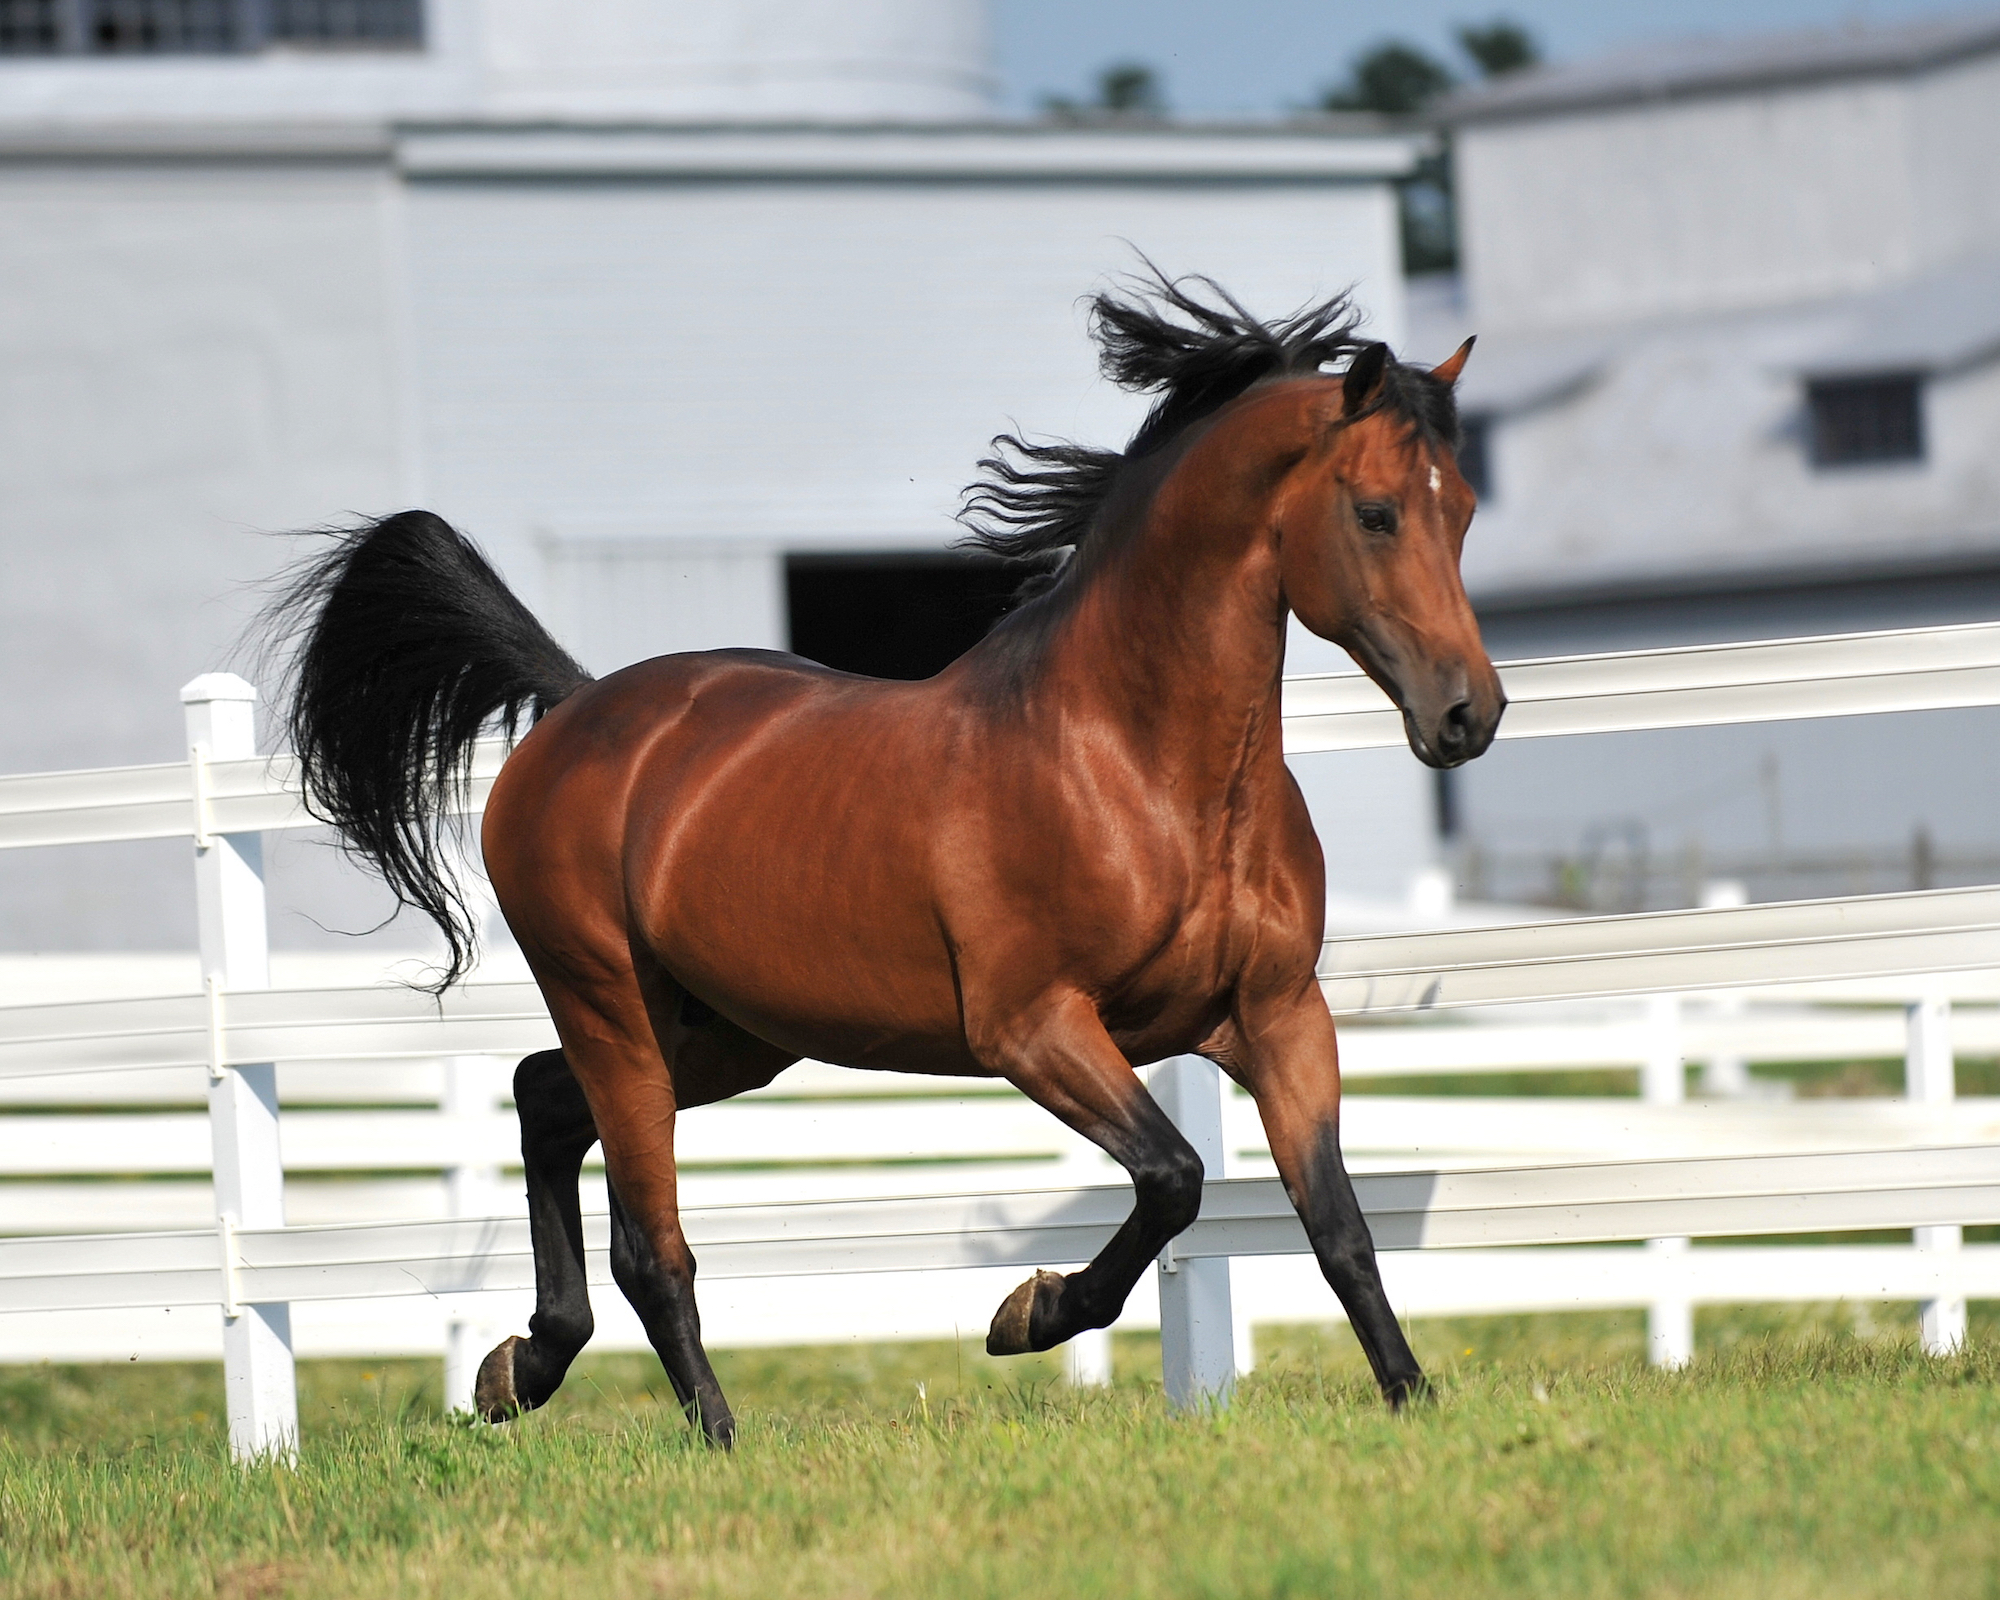 The Best Horse Breeds For Novice Riders